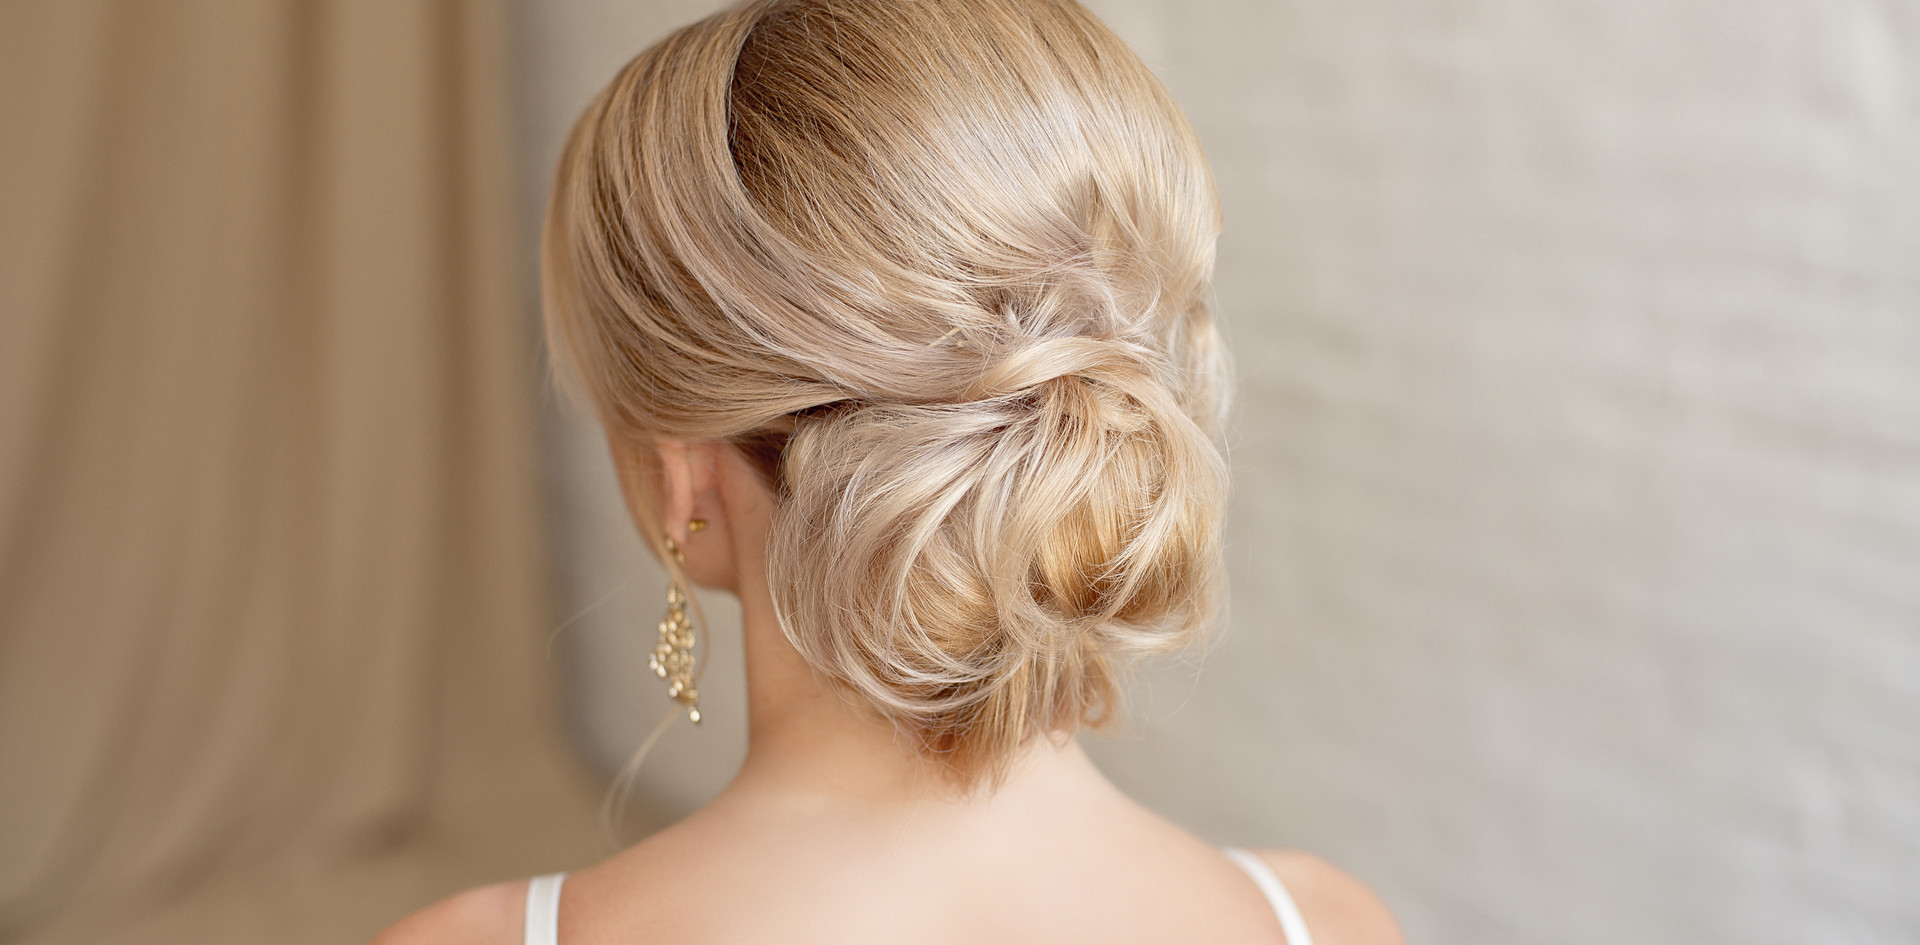 Updo hair styling